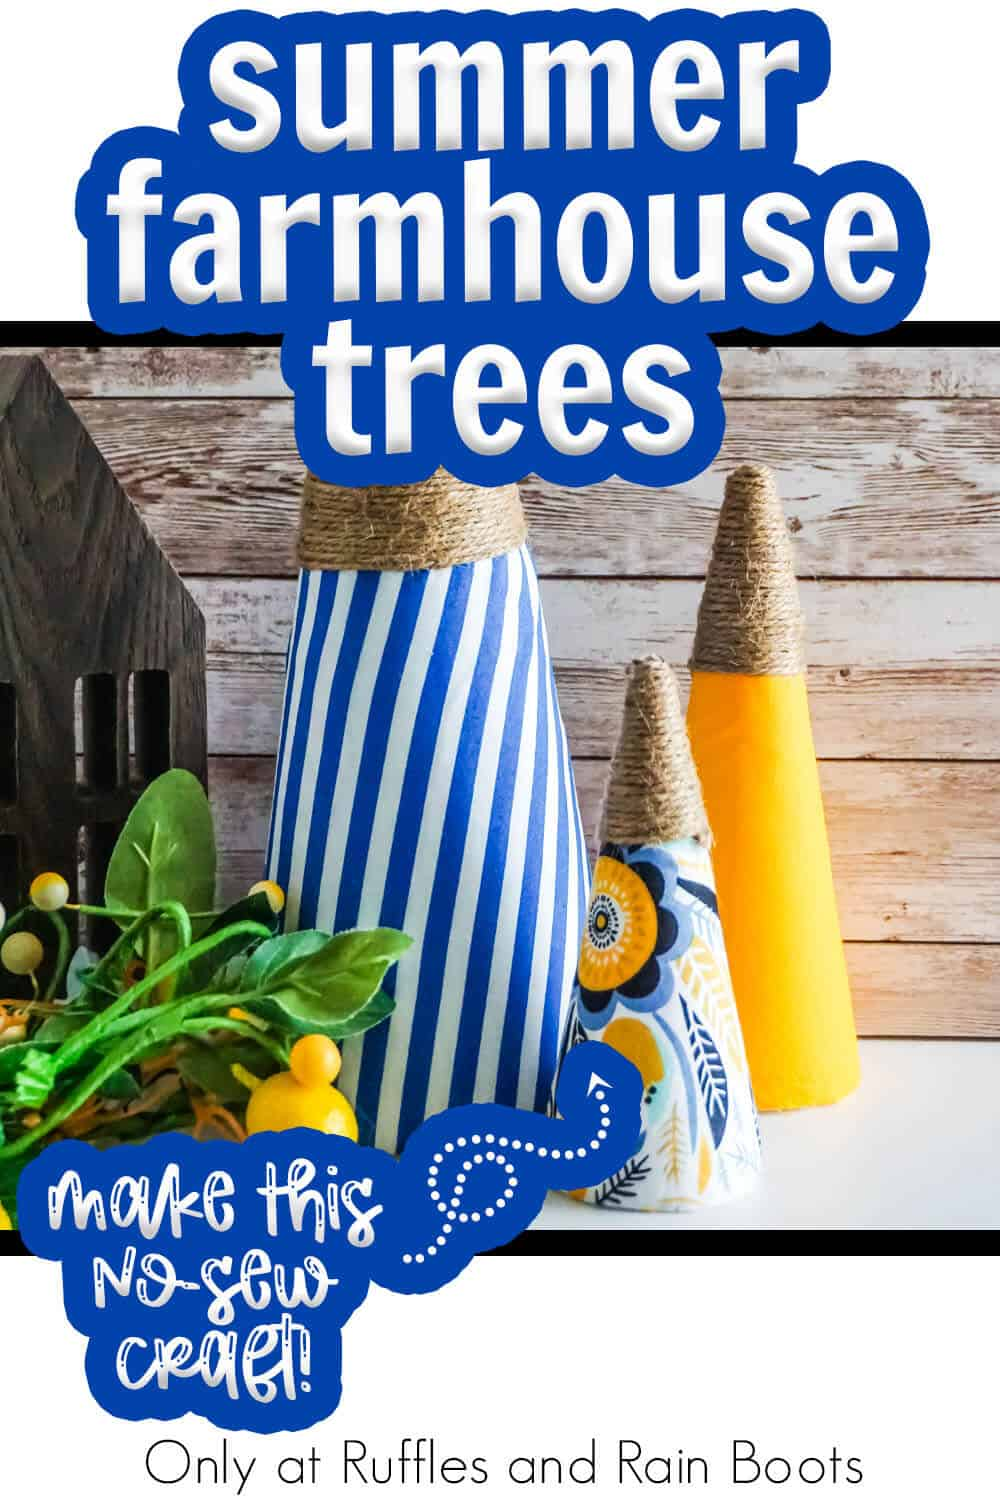 diy summer cone trees for coastal farmhouse decor with text which reads summer farmhouse trees make this no-sew craft